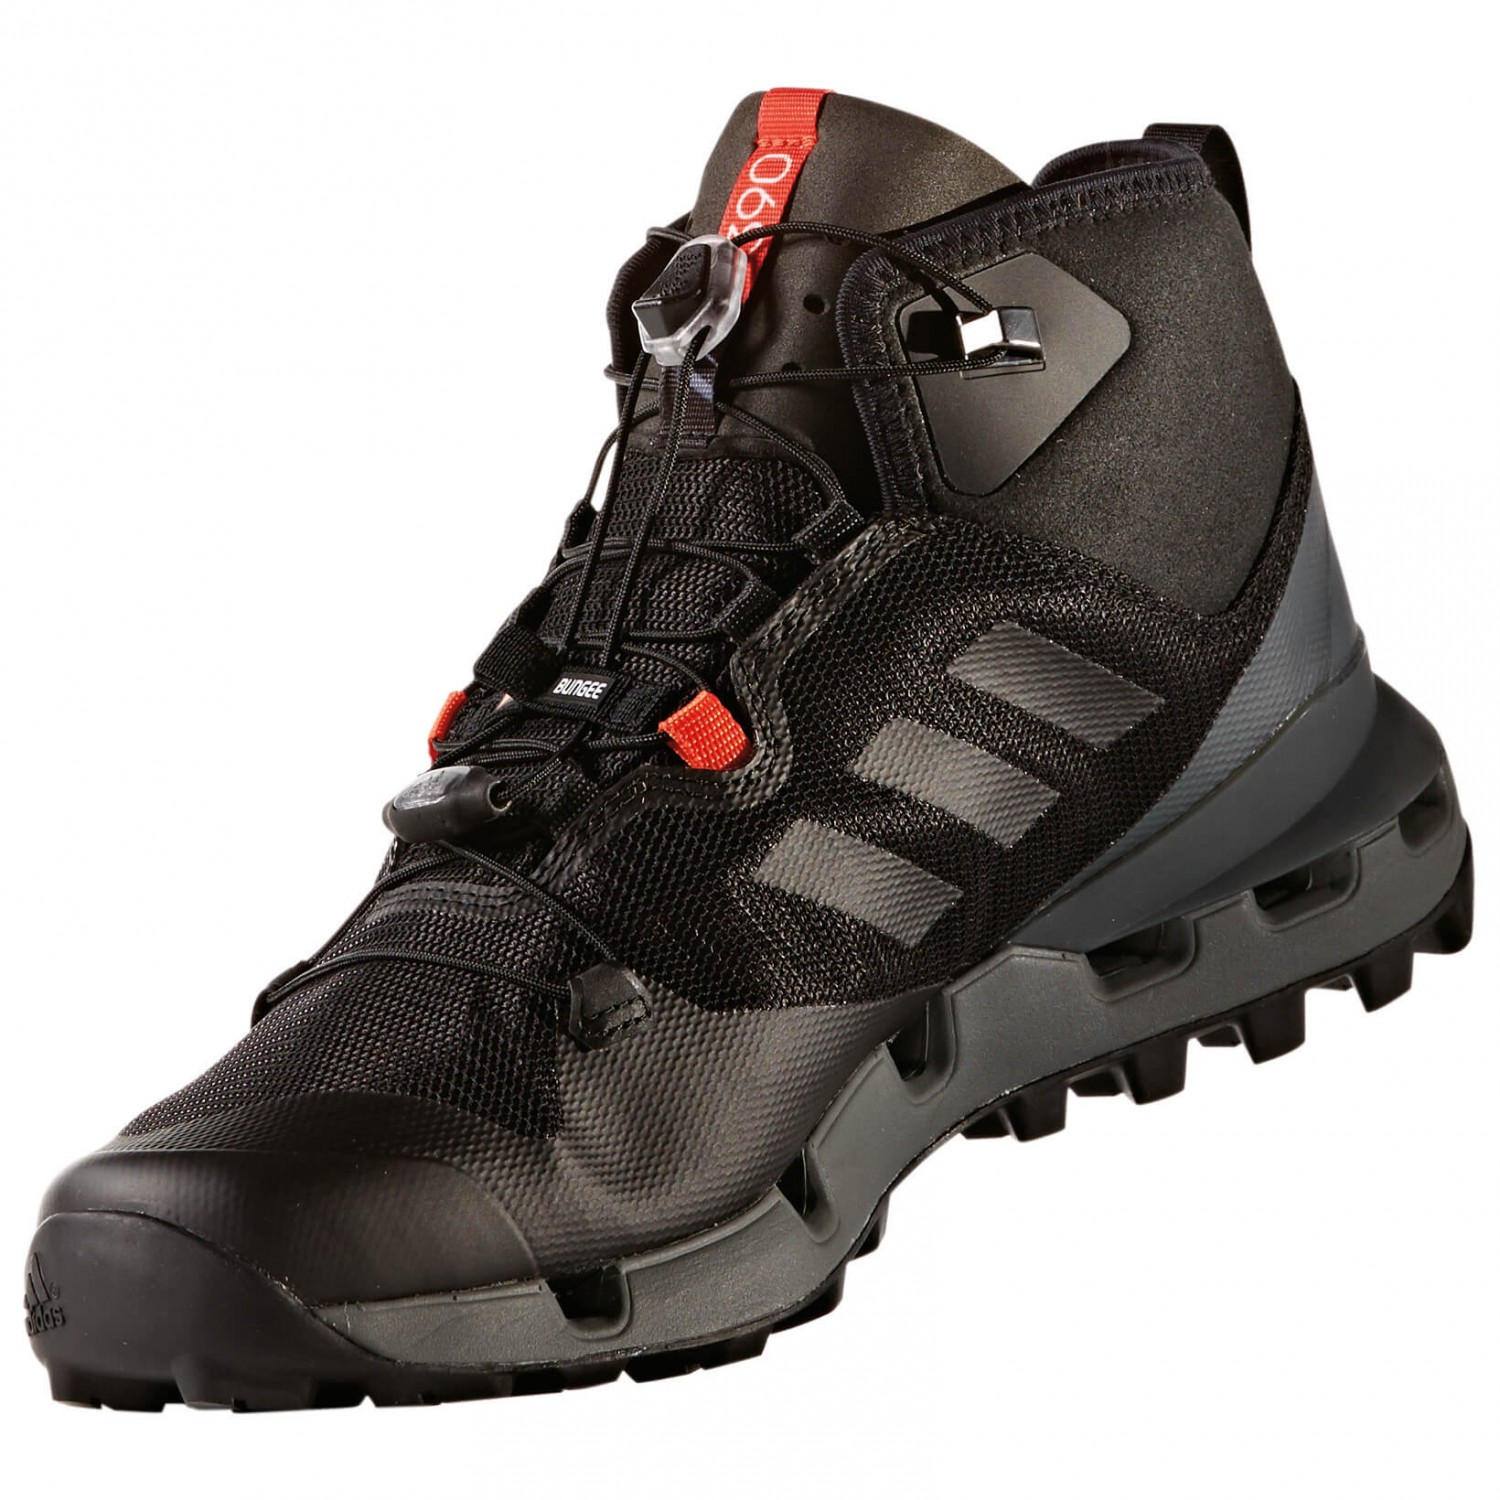 adidas terrex fast mid gtx surround walking boots men 39 s. Black Bedroom Furniture Sets. Home Design Ideas